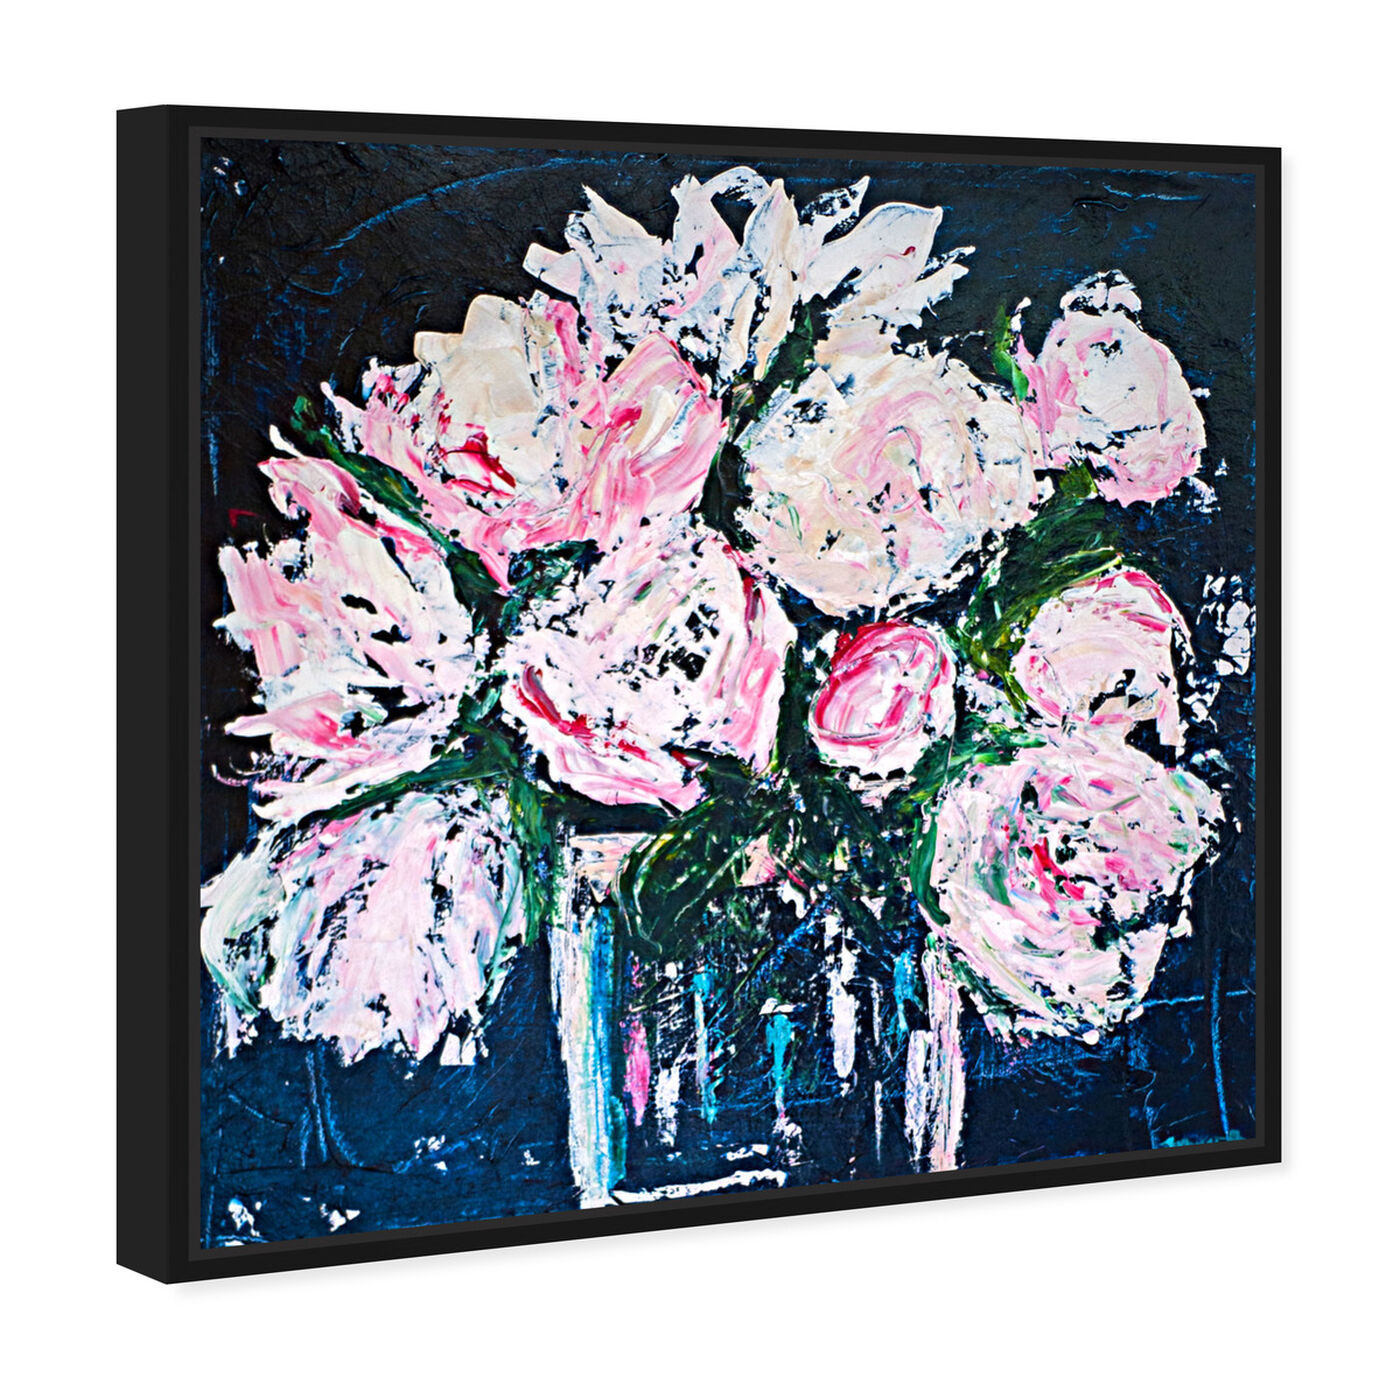 Angled view of Peonies by The Bucket by Claire Sower featuring floral and botanical and florals art.